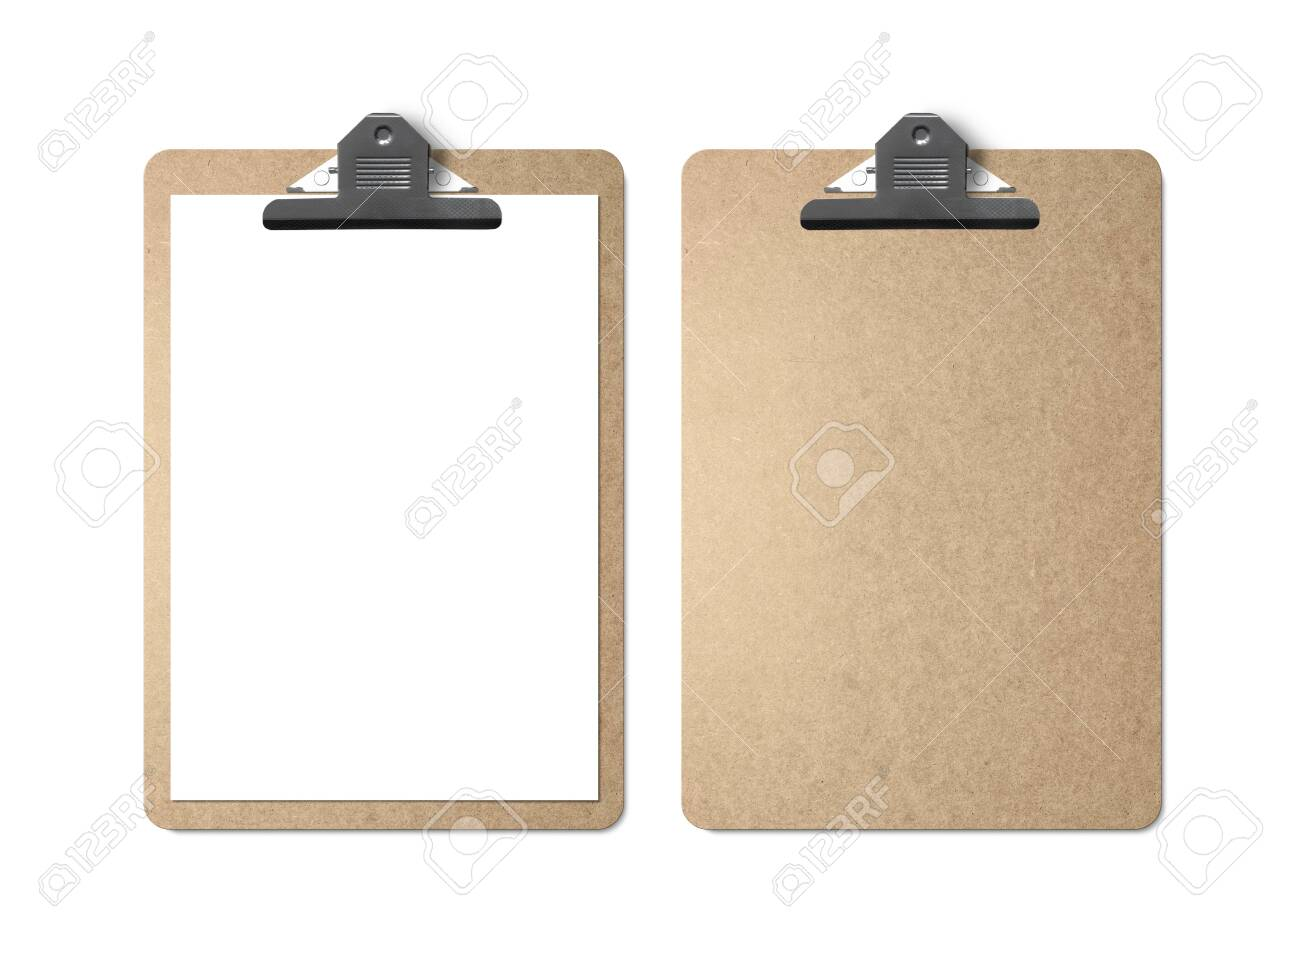 Realistic mockup. Clipboard with sheets of paper on white background. Template for branding identity. Blank objects for placing your design. - 149683947